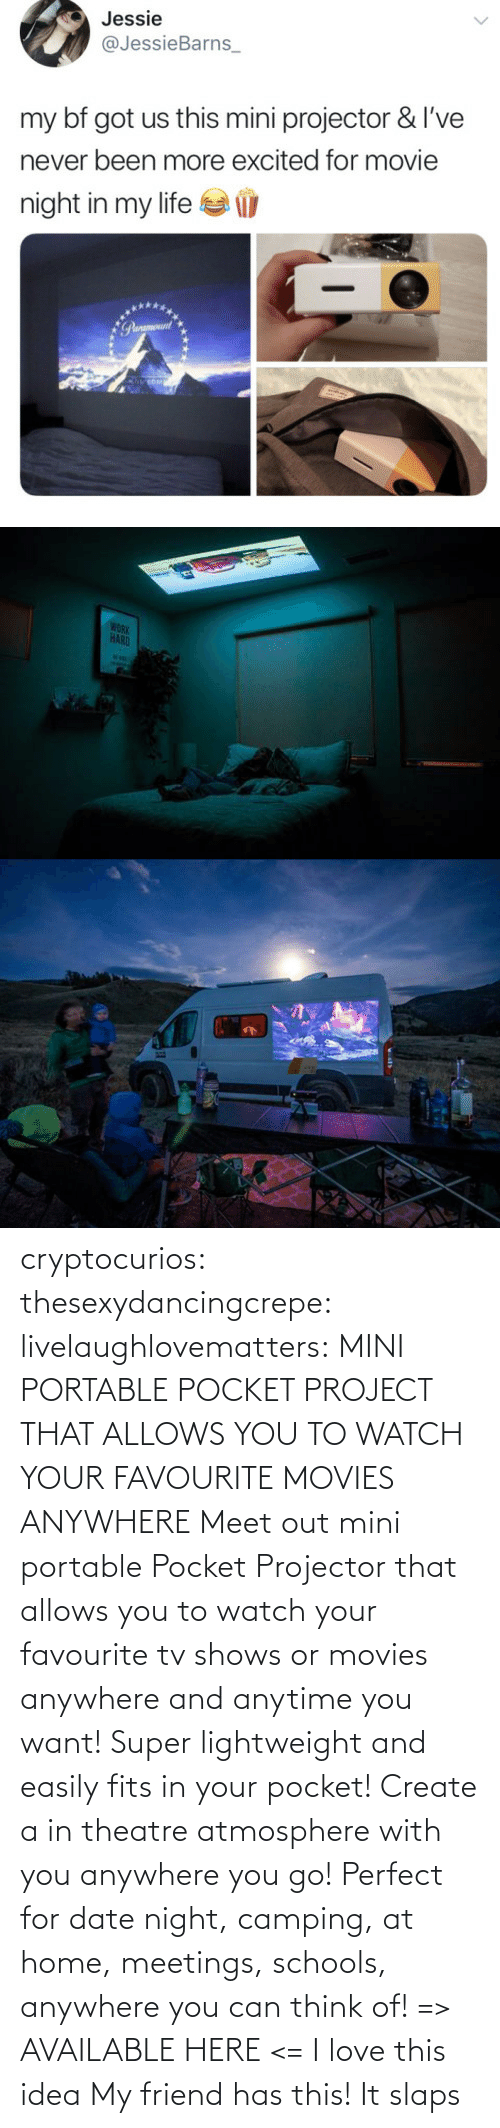 Love, Movies, and Tumblr: cryptocurios: thesexydancingcrepe:  livelaughlovematters:   MINI PORTABLE POCKET PROJECT THAT ALLOWS YOU TO WATCH YOUR FAVOURITE MOVIES ANYWHERE Meet out mini portable Pocket Projector that allows you to watch your favourite tv shows or movies anywhere and anytime you want! Super lightweight and easily fits in your pocket! Create a in theatre atmosphere with you anywhere you go! Perfect for date night, camping, at home, meetings, schools, anywhere you can think of! => AVAILABLE HERE <=    I love this idea    My friend has this! It slaps